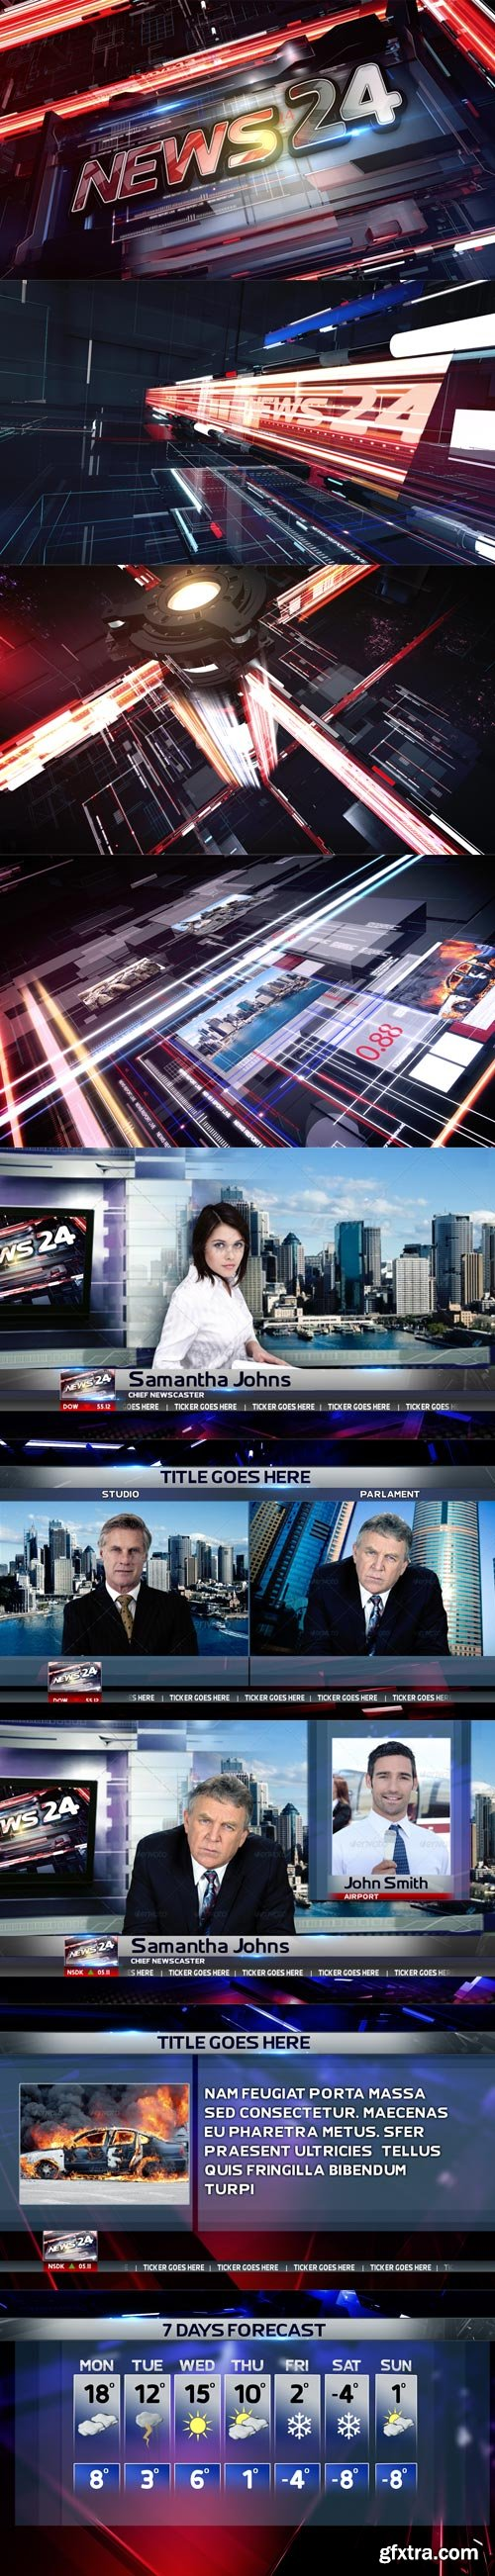 Videohive - News 24 Broadcast Pack - 9943953